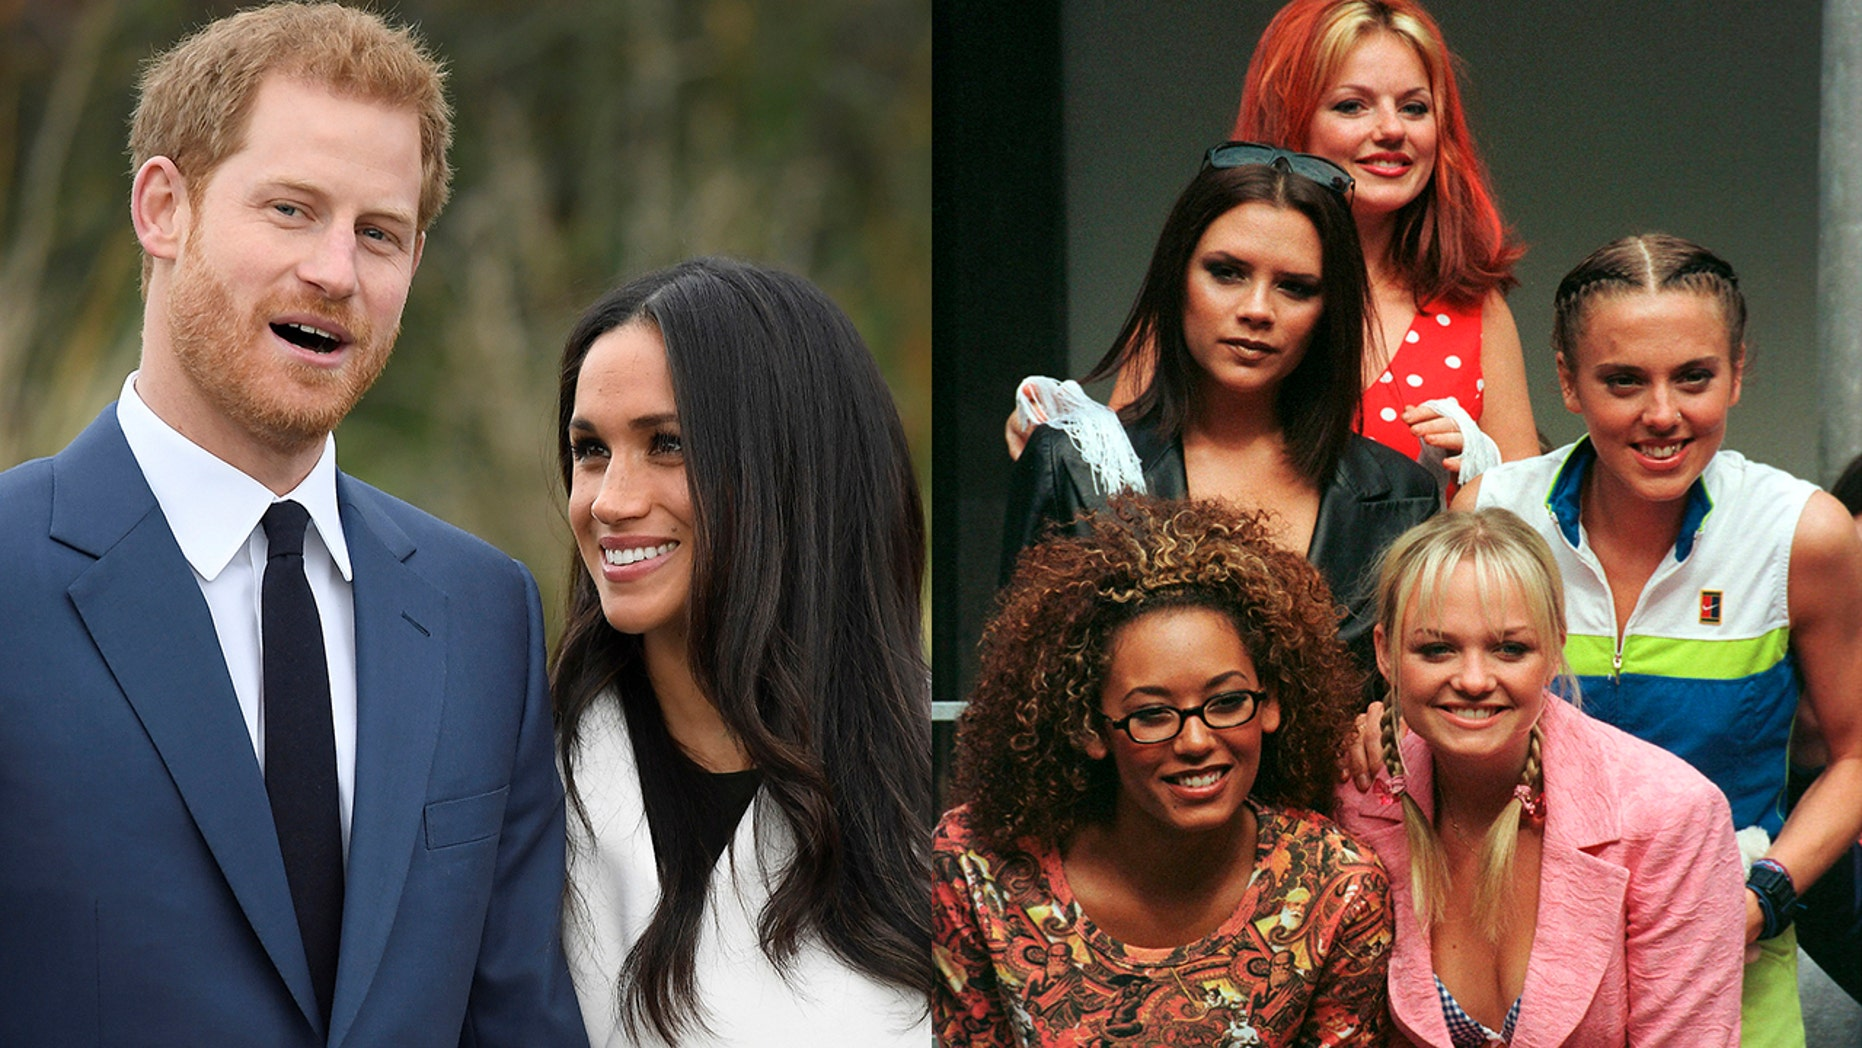 Mel B of the Spice Girls revealed the girls group has been invited to attend Prince Harry and Meghan Markle's May 19 nuptials.